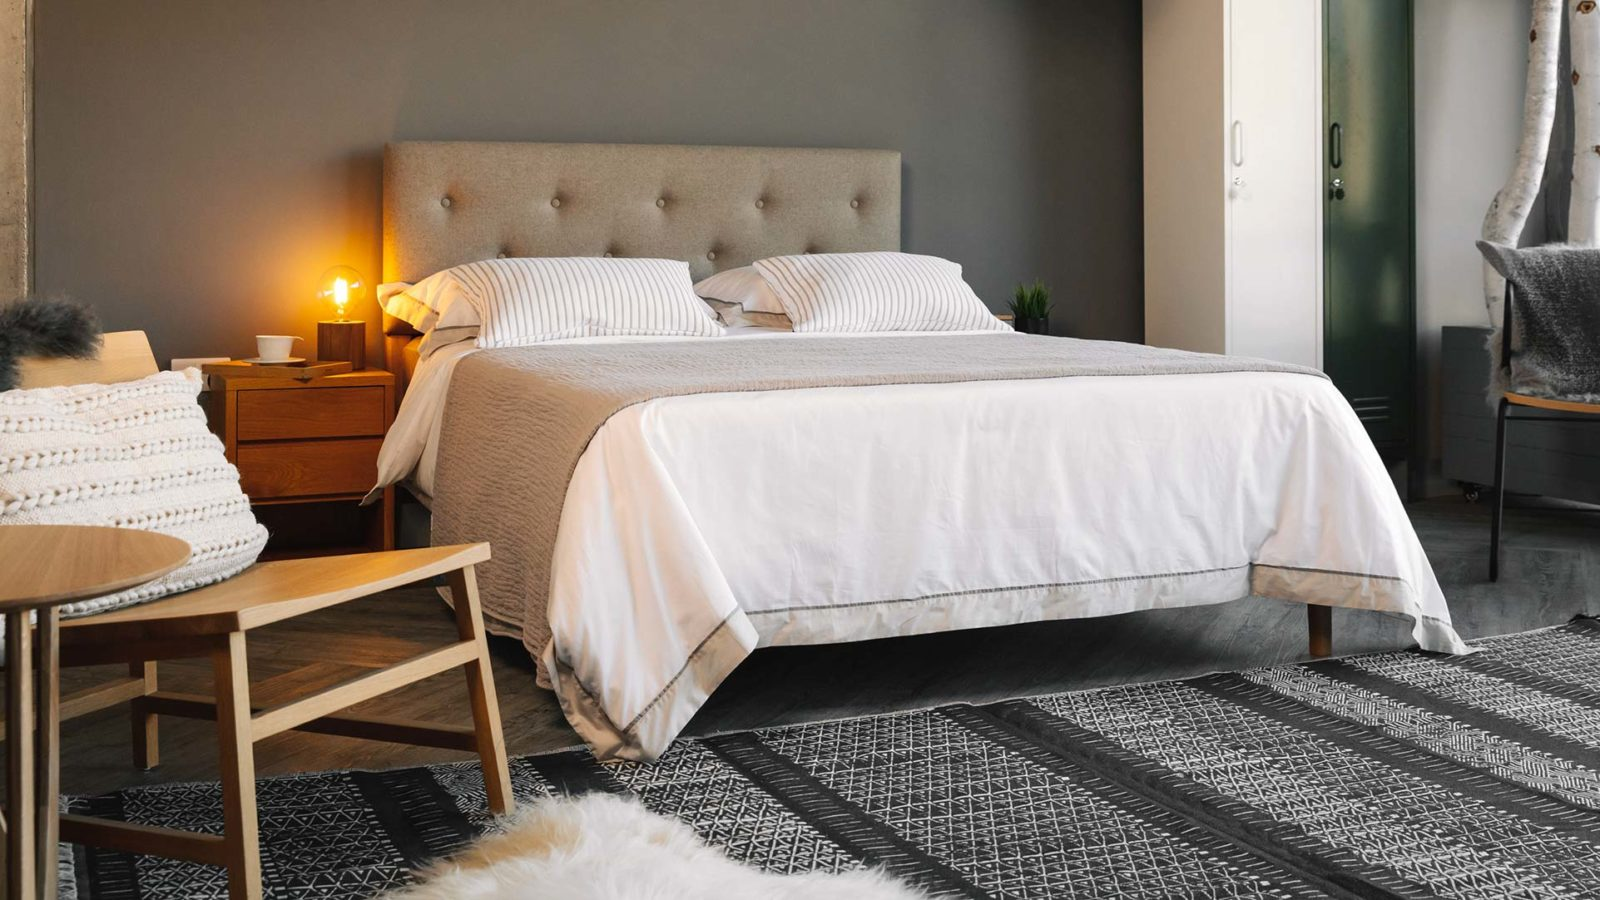 hotel style crisp white bedding with contrast border